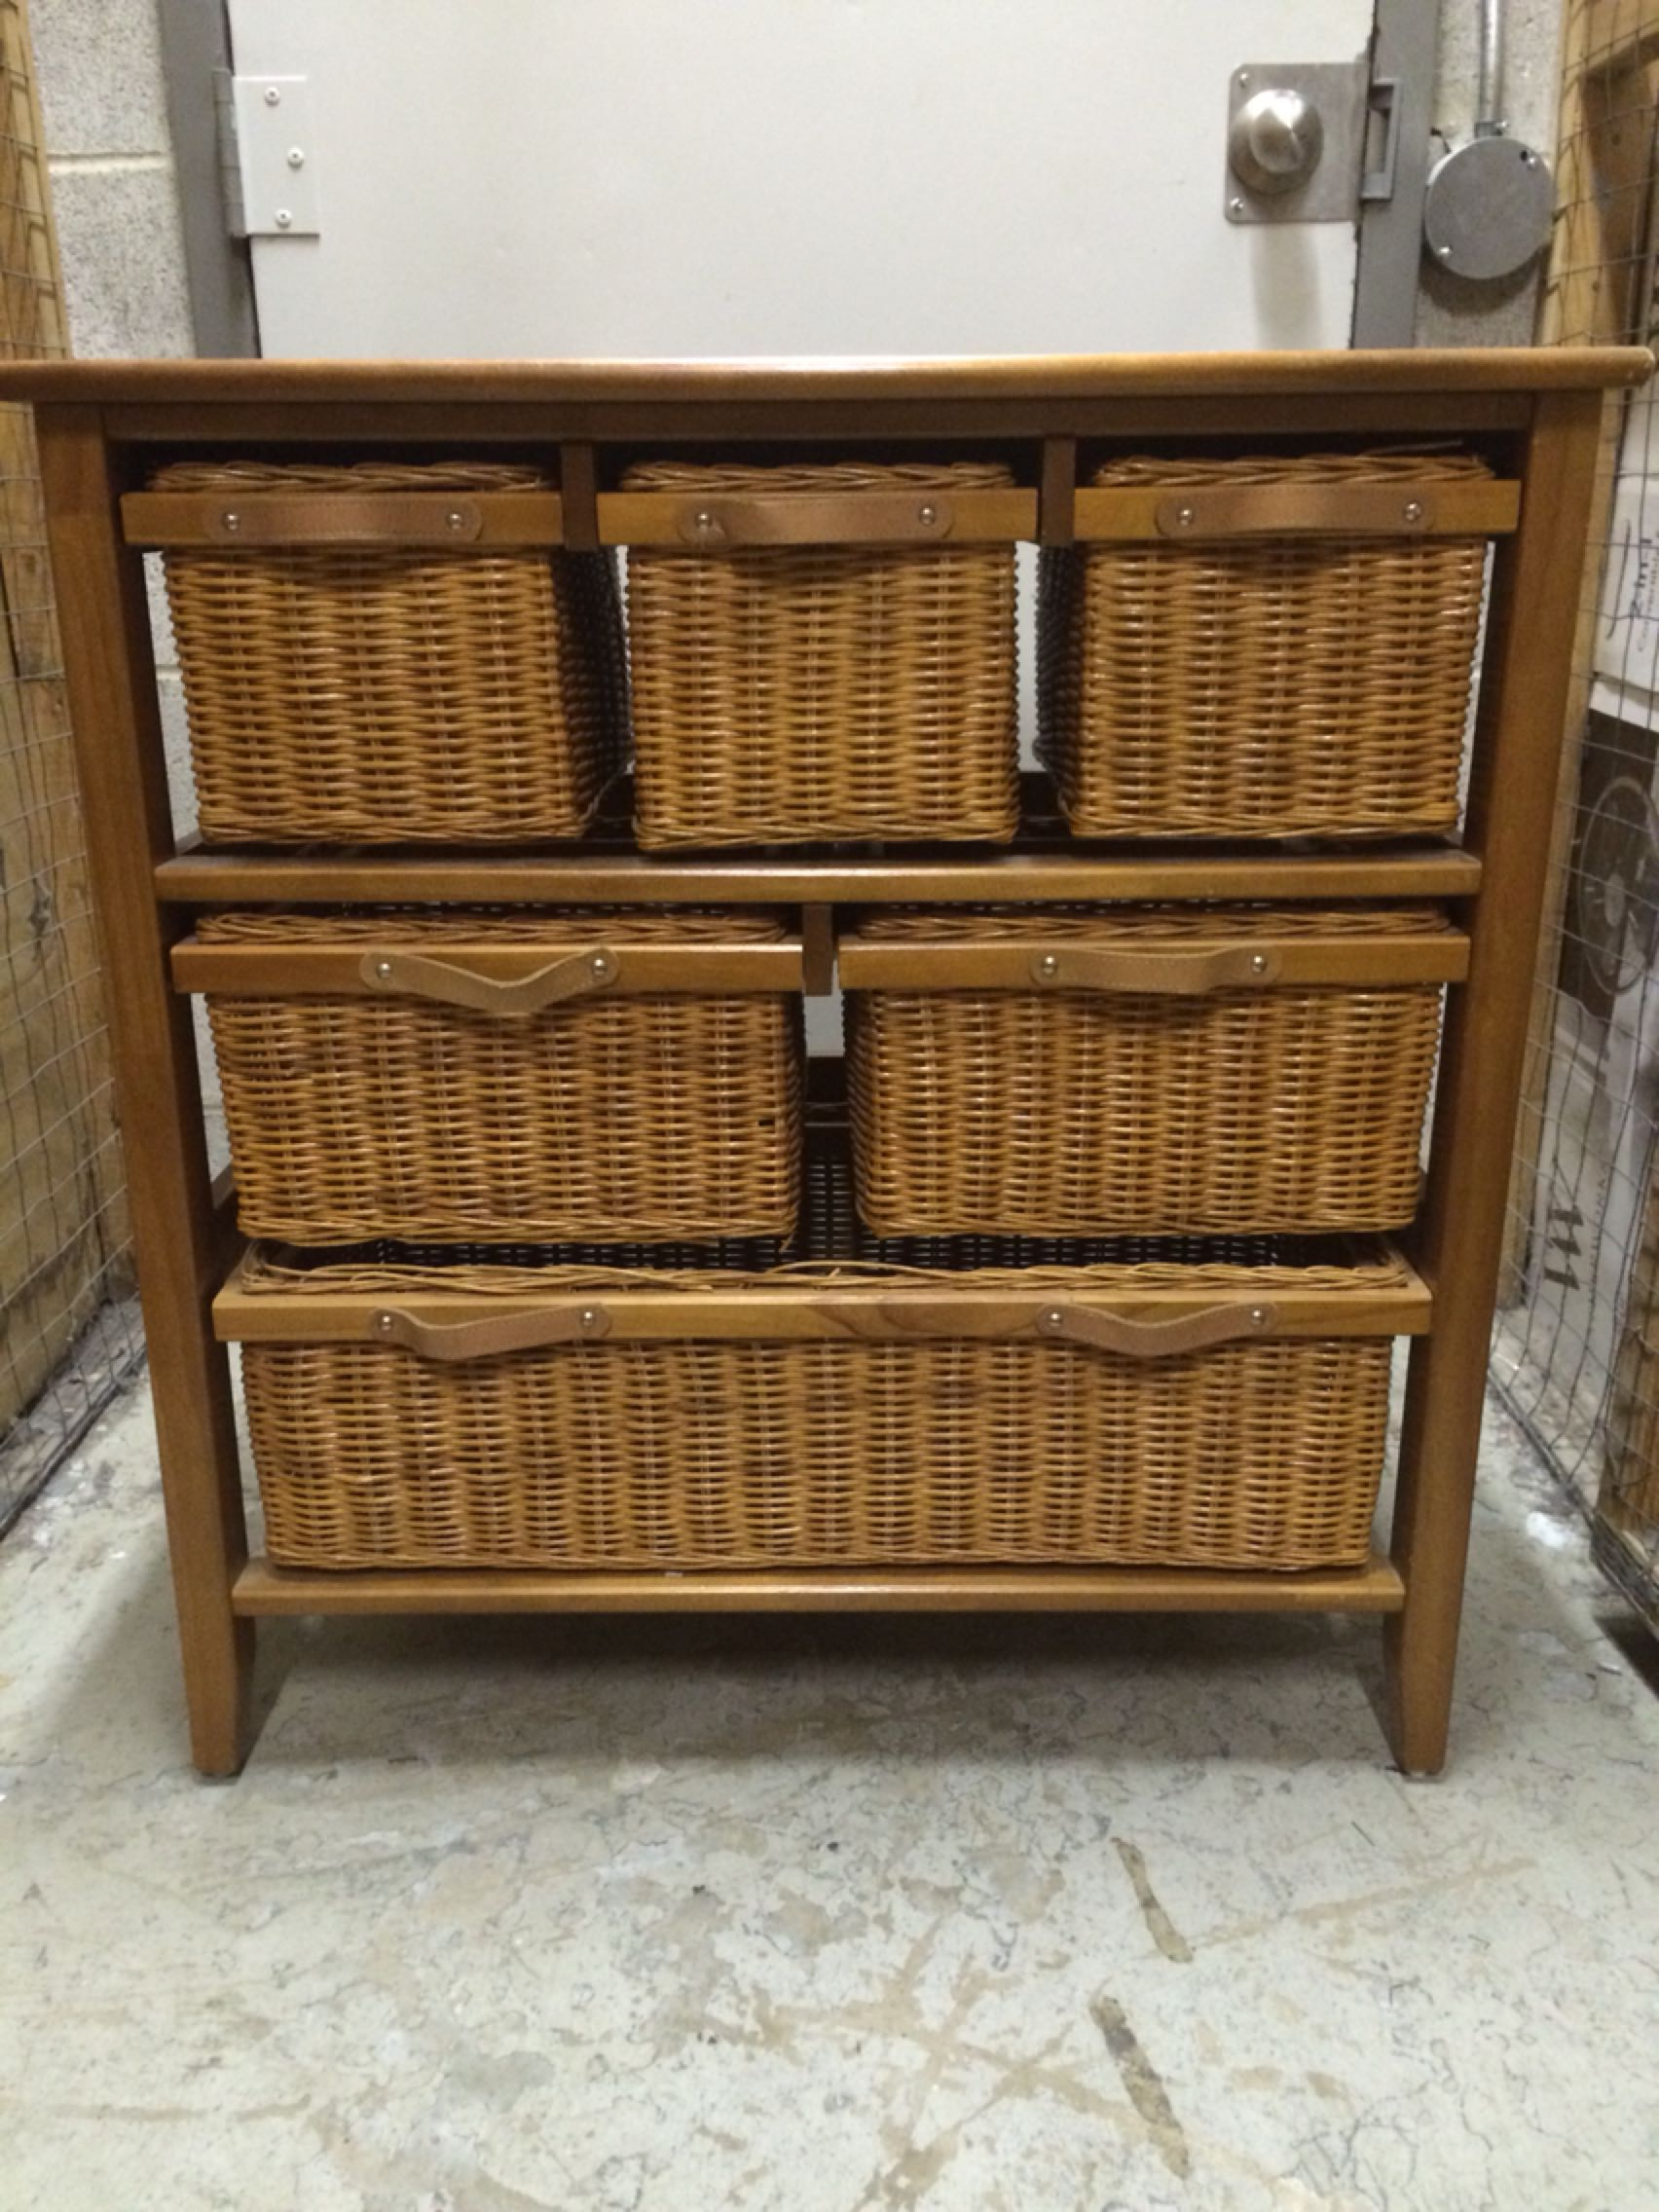 Wonderful Find more 6 Drawer Wicker Chest. Regular $239.99 At Canadian Tire  LB25